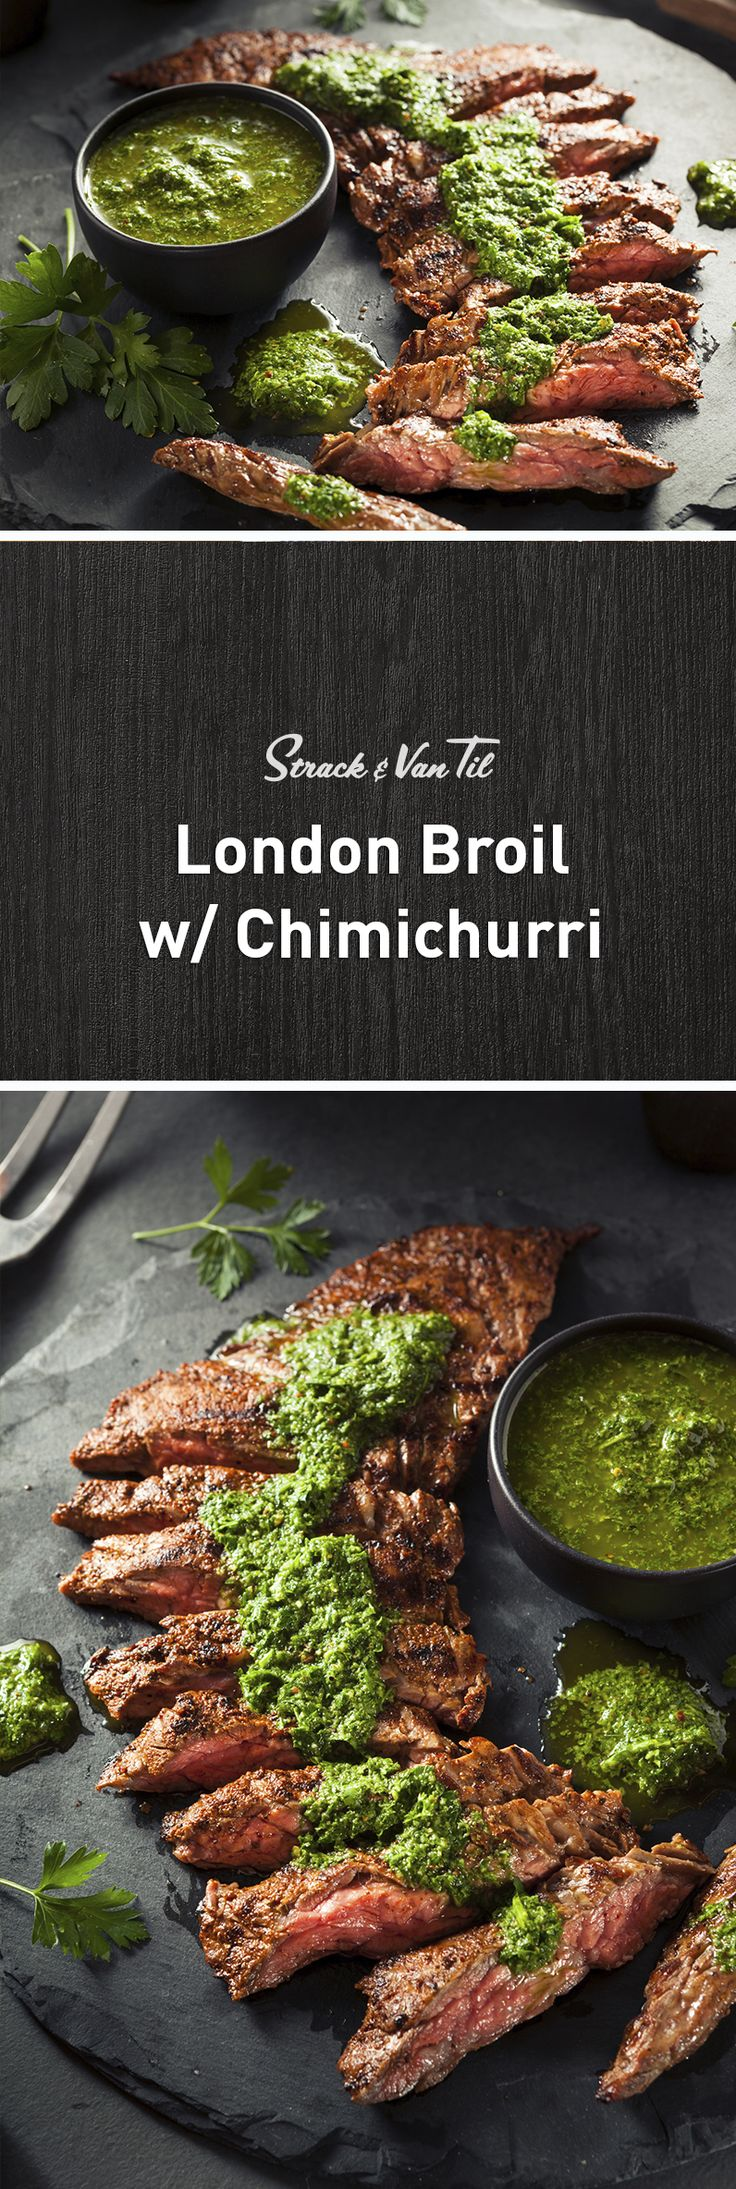 Dinner tonight—London Broil with Chimichurri Sauce!